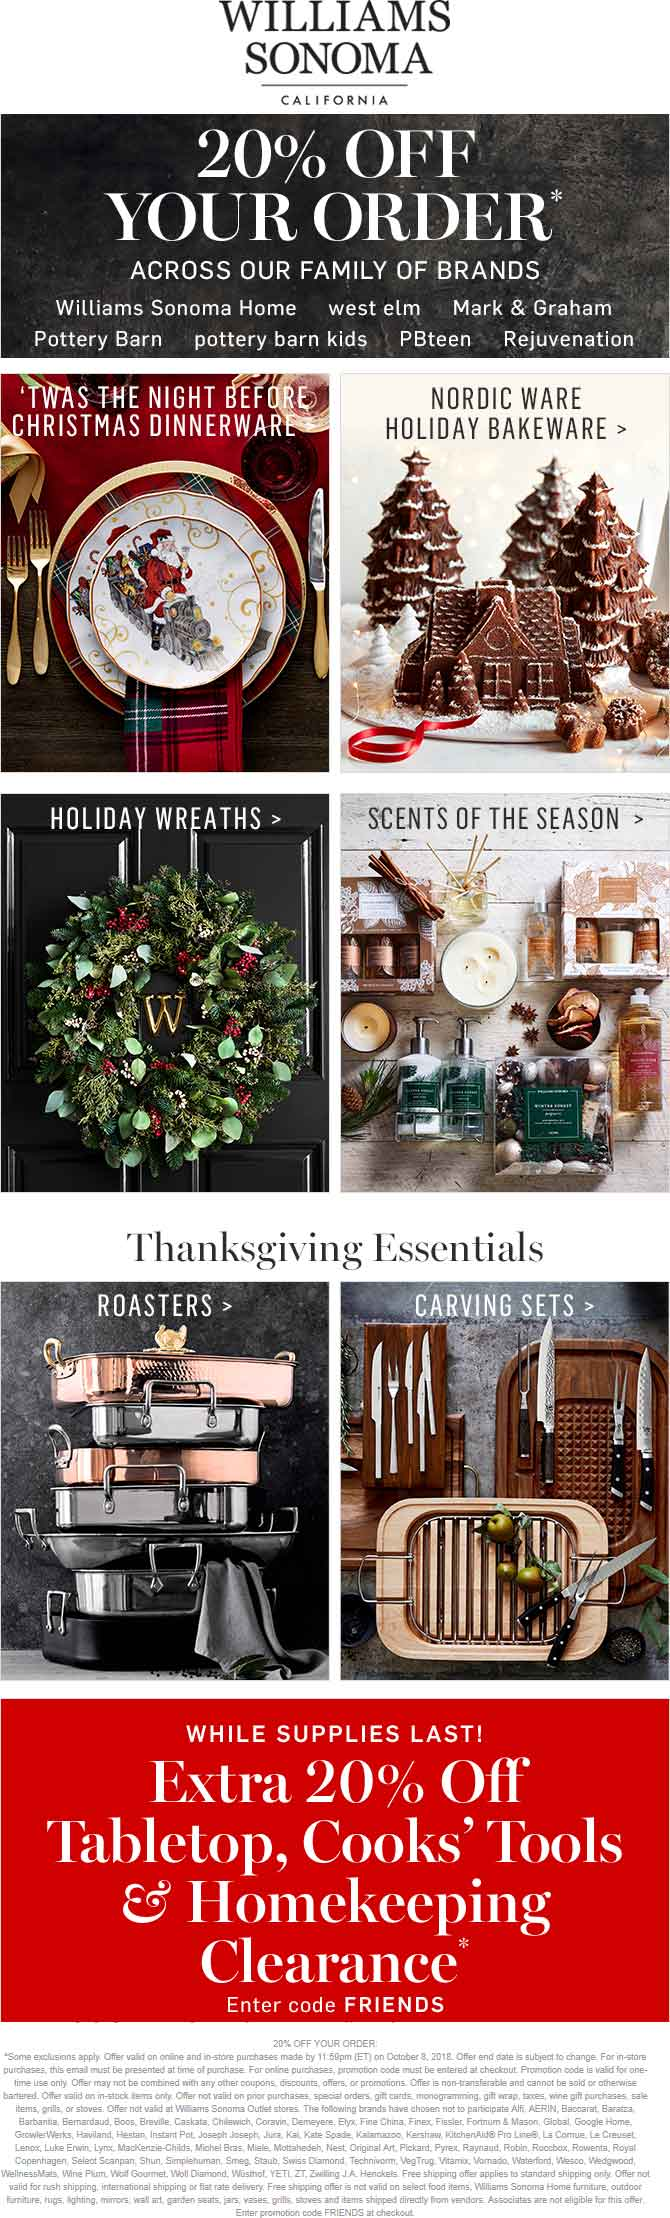 Williams Sonoma Coupon November 2019 20% off at Williams Sonoma, West Elm, Mark & Graham, Rejuvenation, or online via promo code FRIENDS